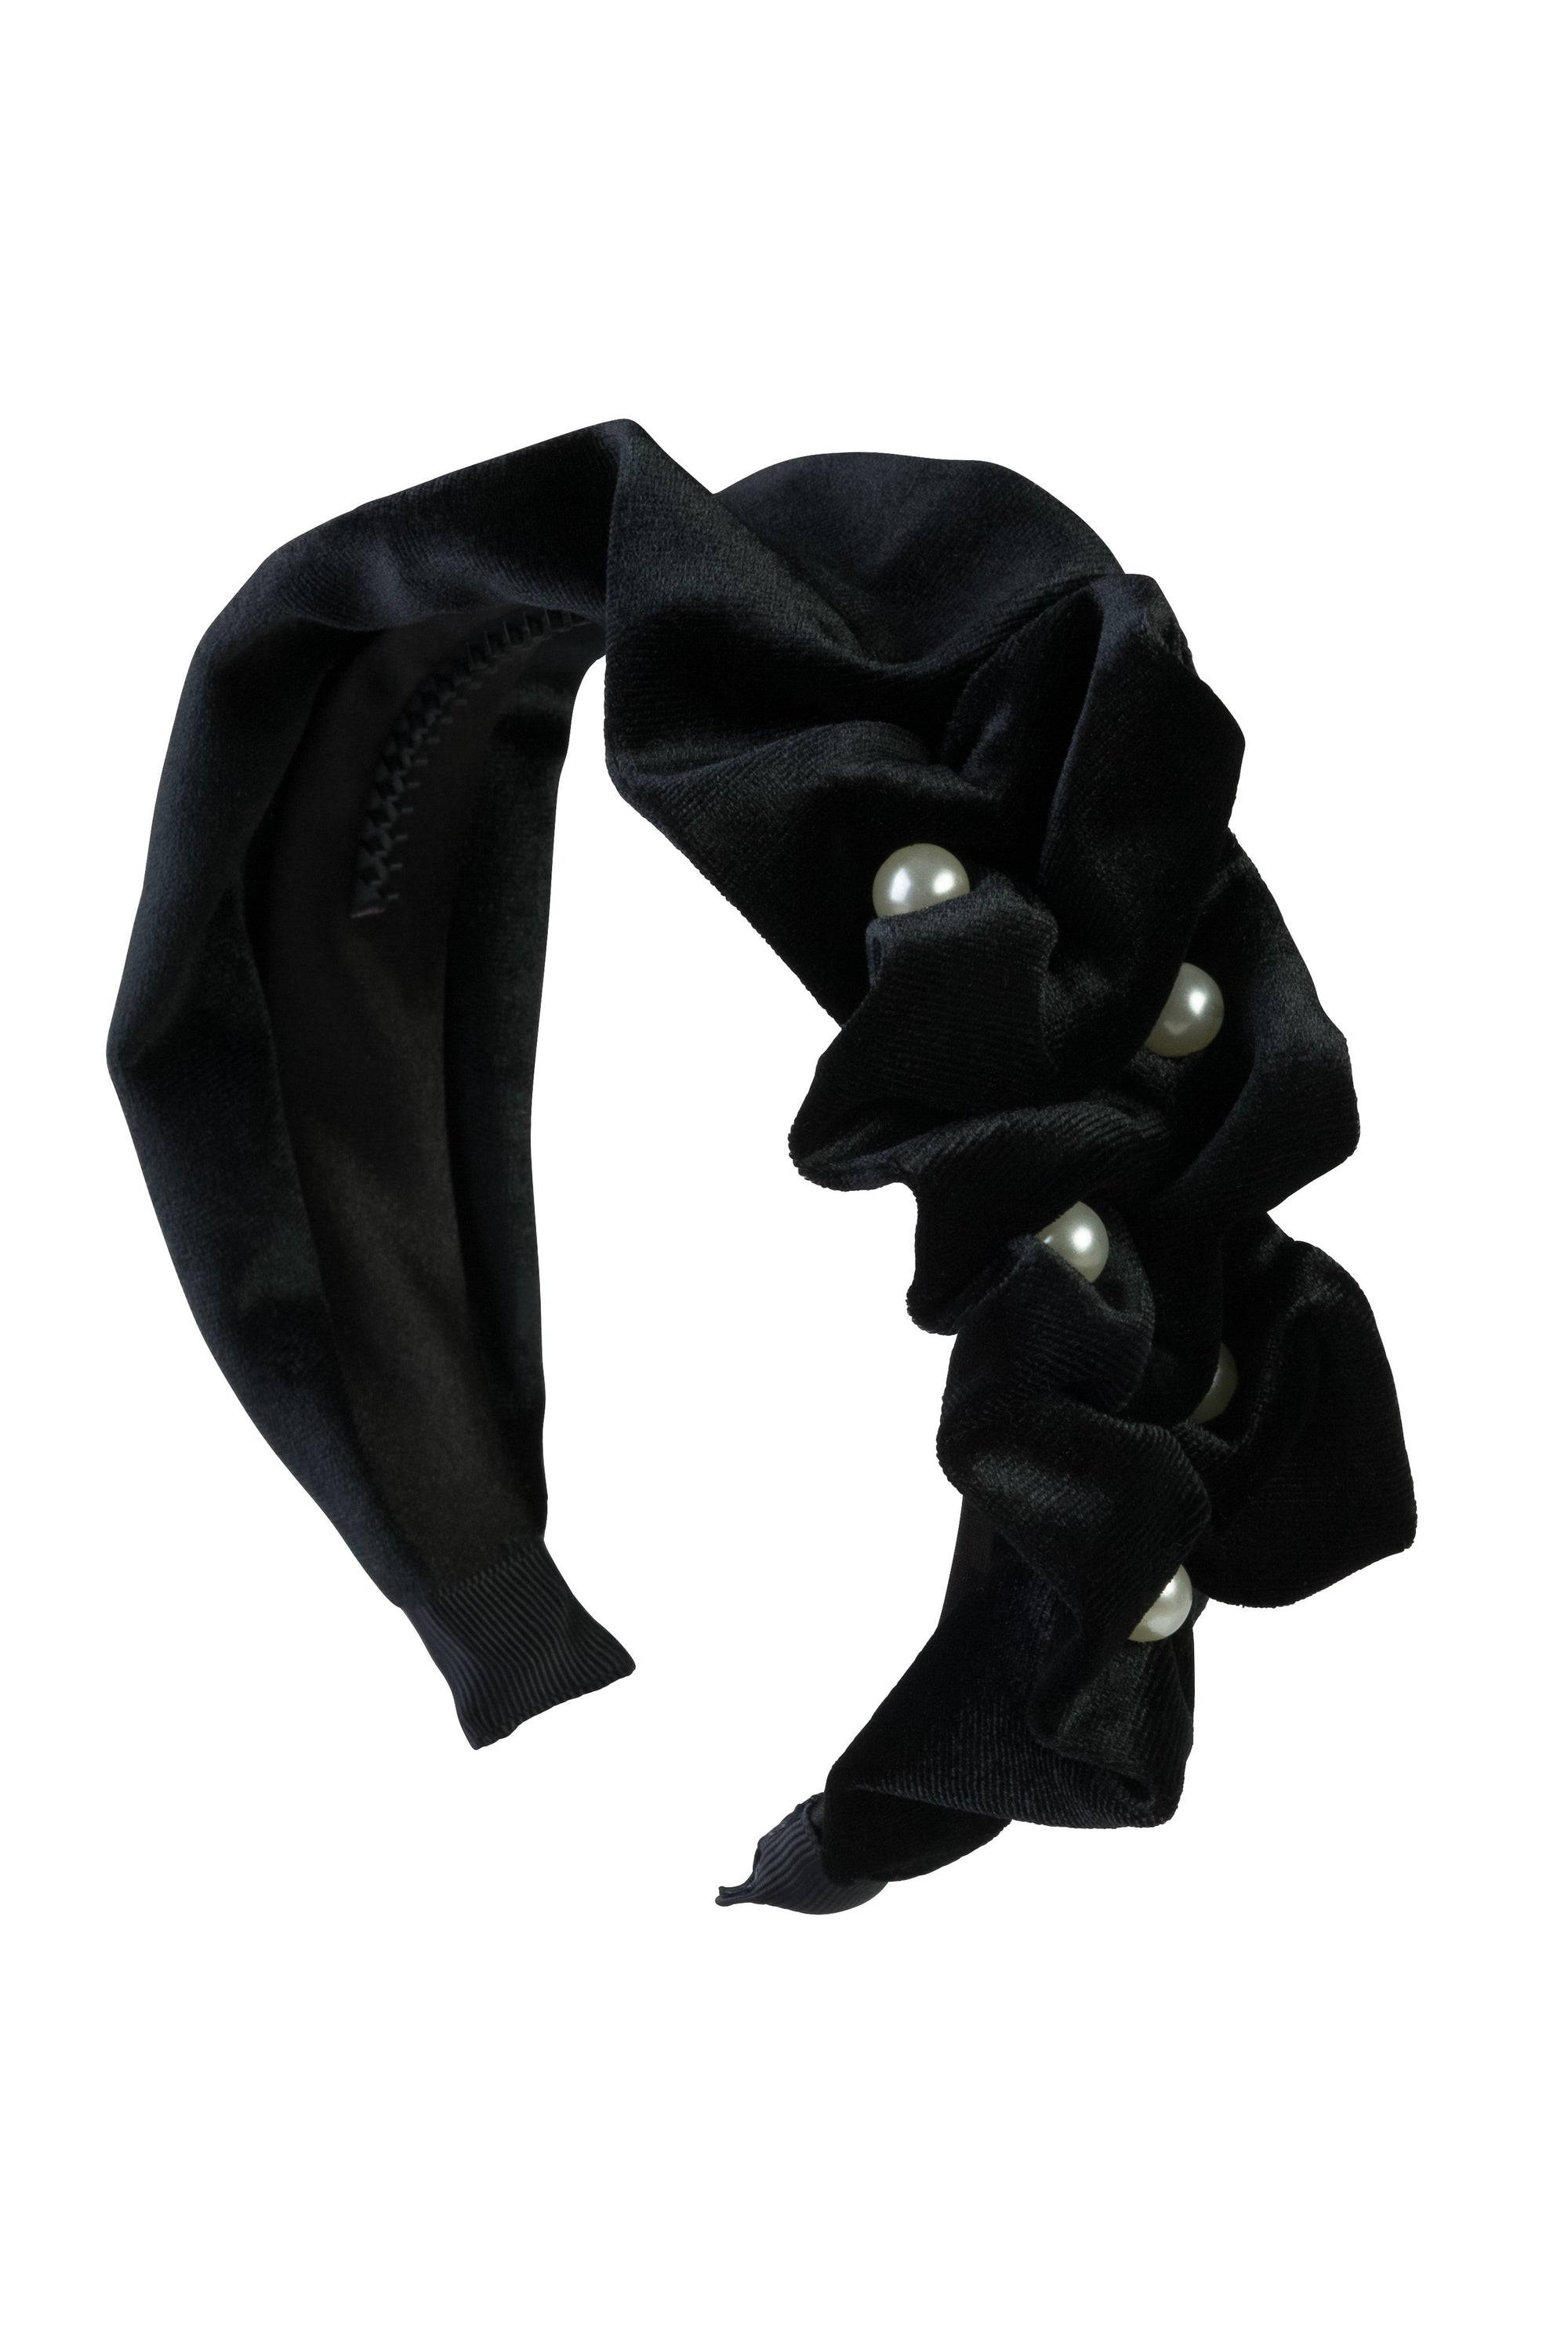 Ruffled Pearl Velvet Headband - Black - PROJECT 6, modest fashion